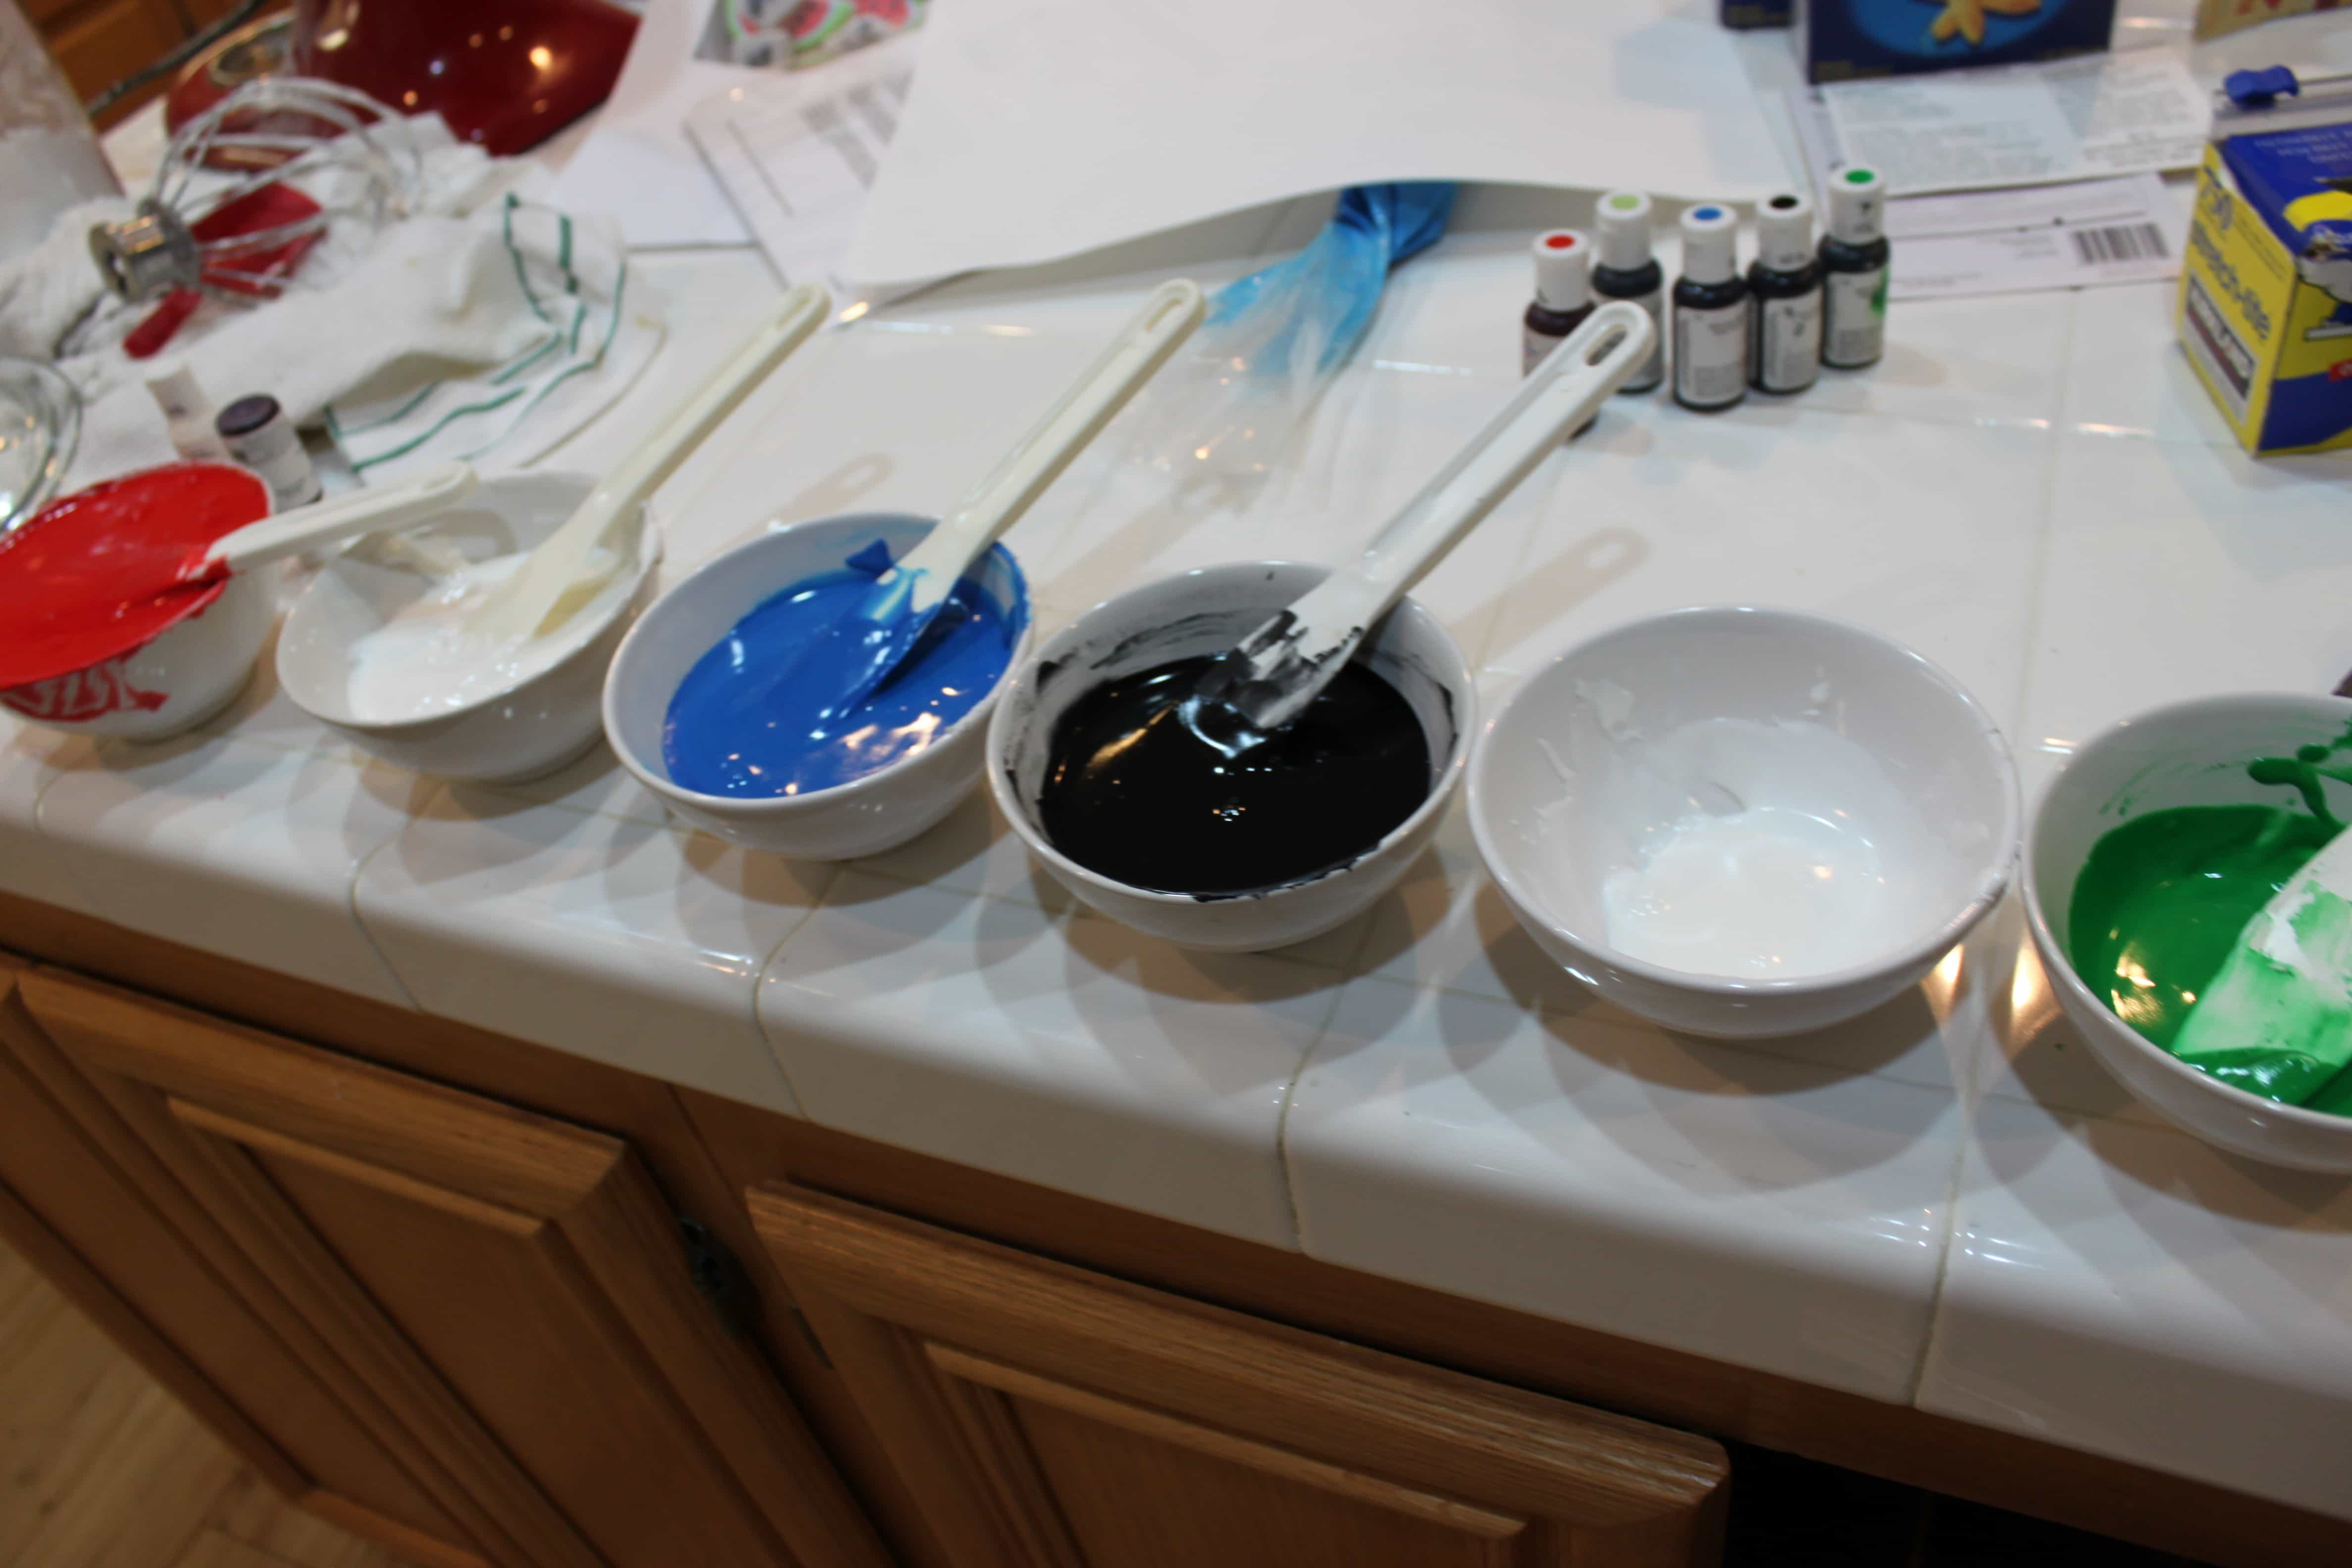 icing, mixing color of icing for decorating cookies with a piping bag @createdbydiane